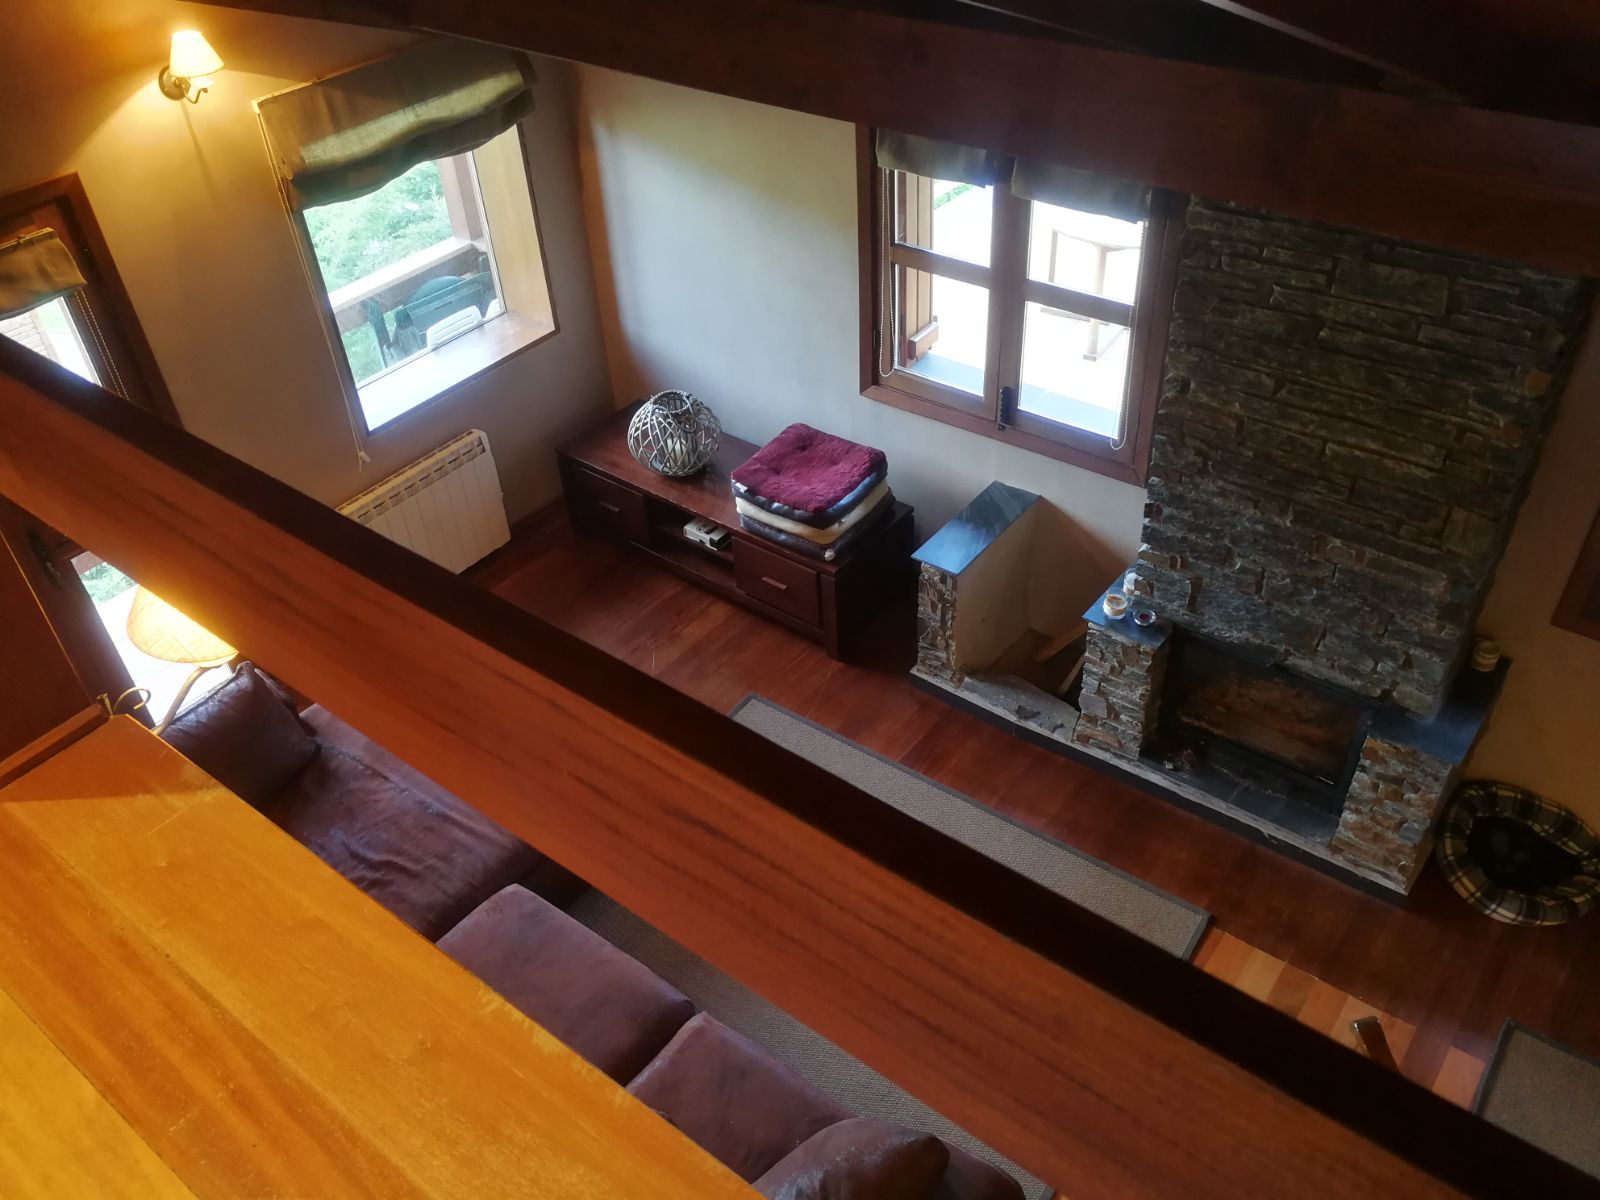 the living room seen from above